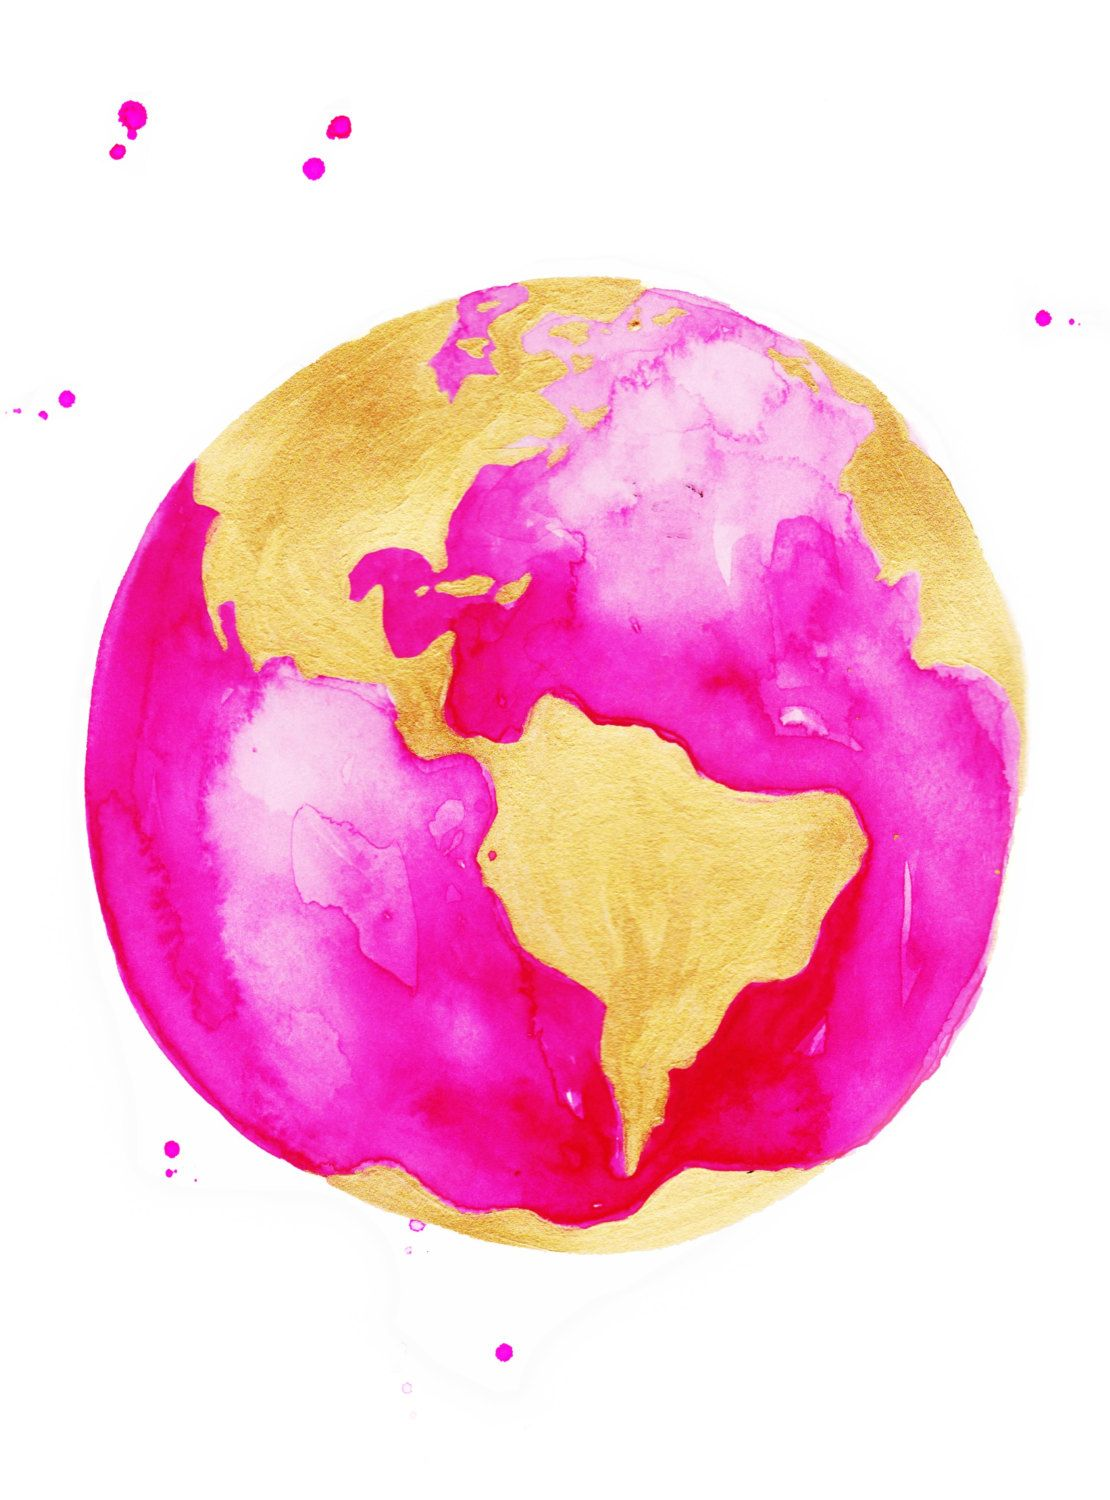 1110x1500 Pink And Gold Watercolor Globe Illustration G I R L Y